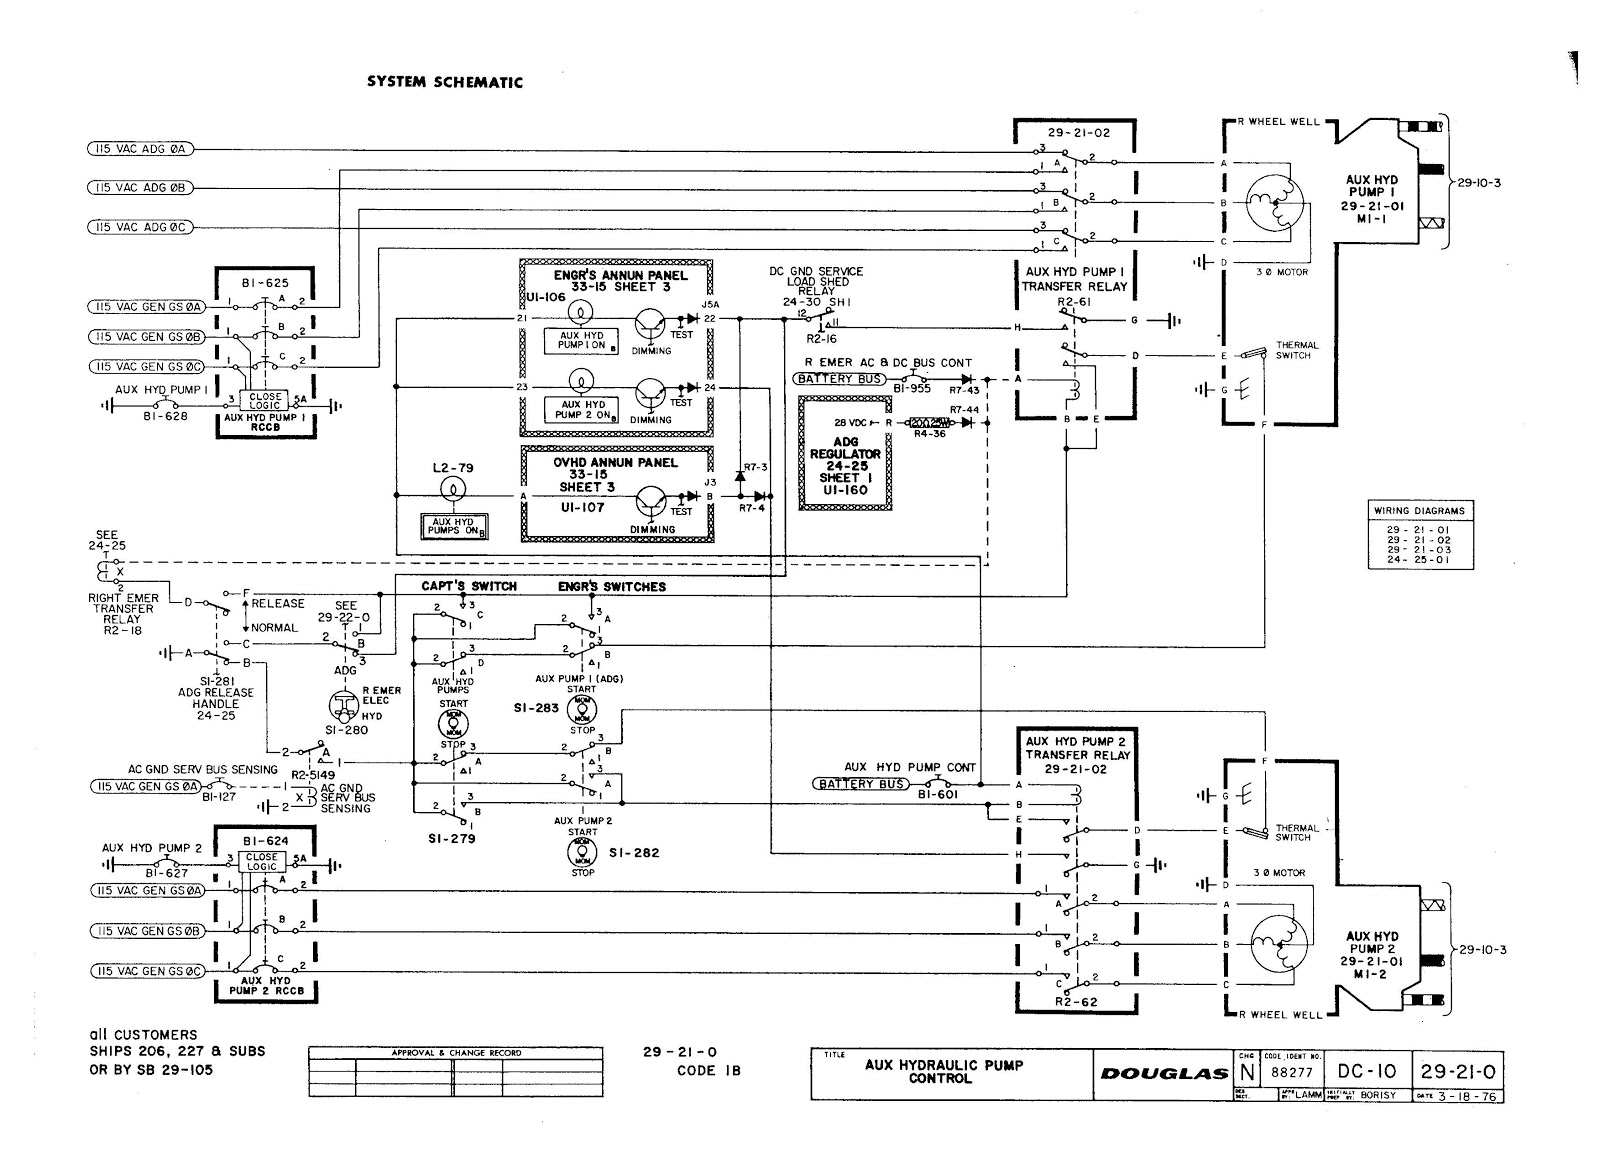 Schematic+diagram+dc+10+hydraulic+001 part 66 virtual school aircraft wiring and schematic diagrams reading wiring schematics at crackthecode.co